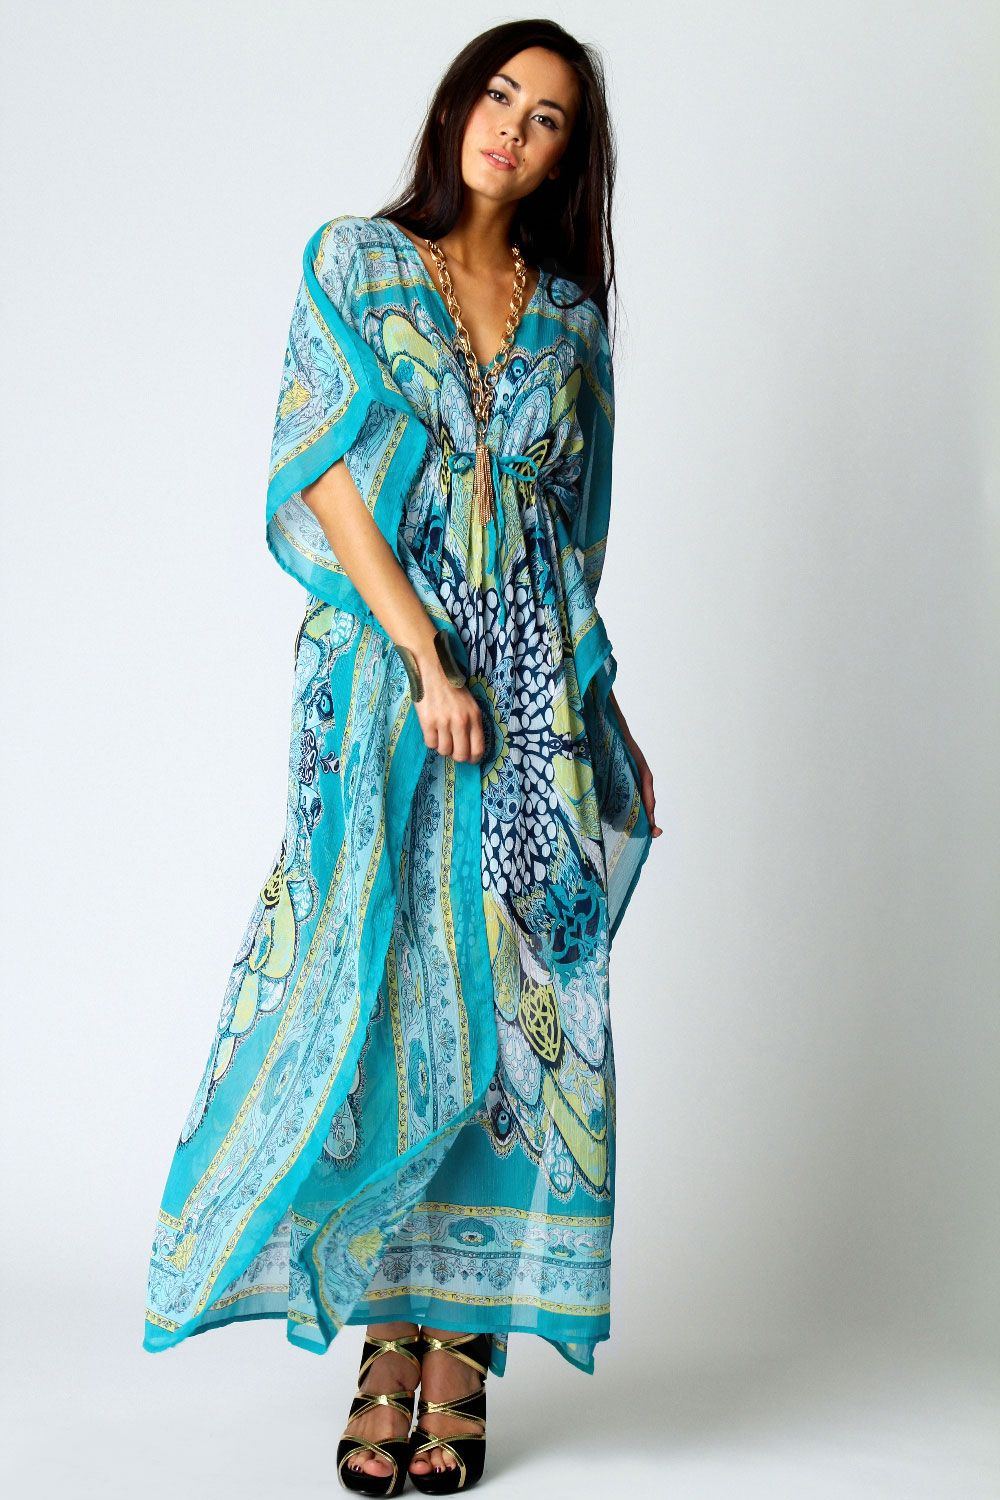 08be13eb56d5 Kara V Neck Paisley Print Maxi Kaftan Dress - seriously seeking such maxi  dressed, not aka caftans, but do prefer latter - it's an ethnic thing!